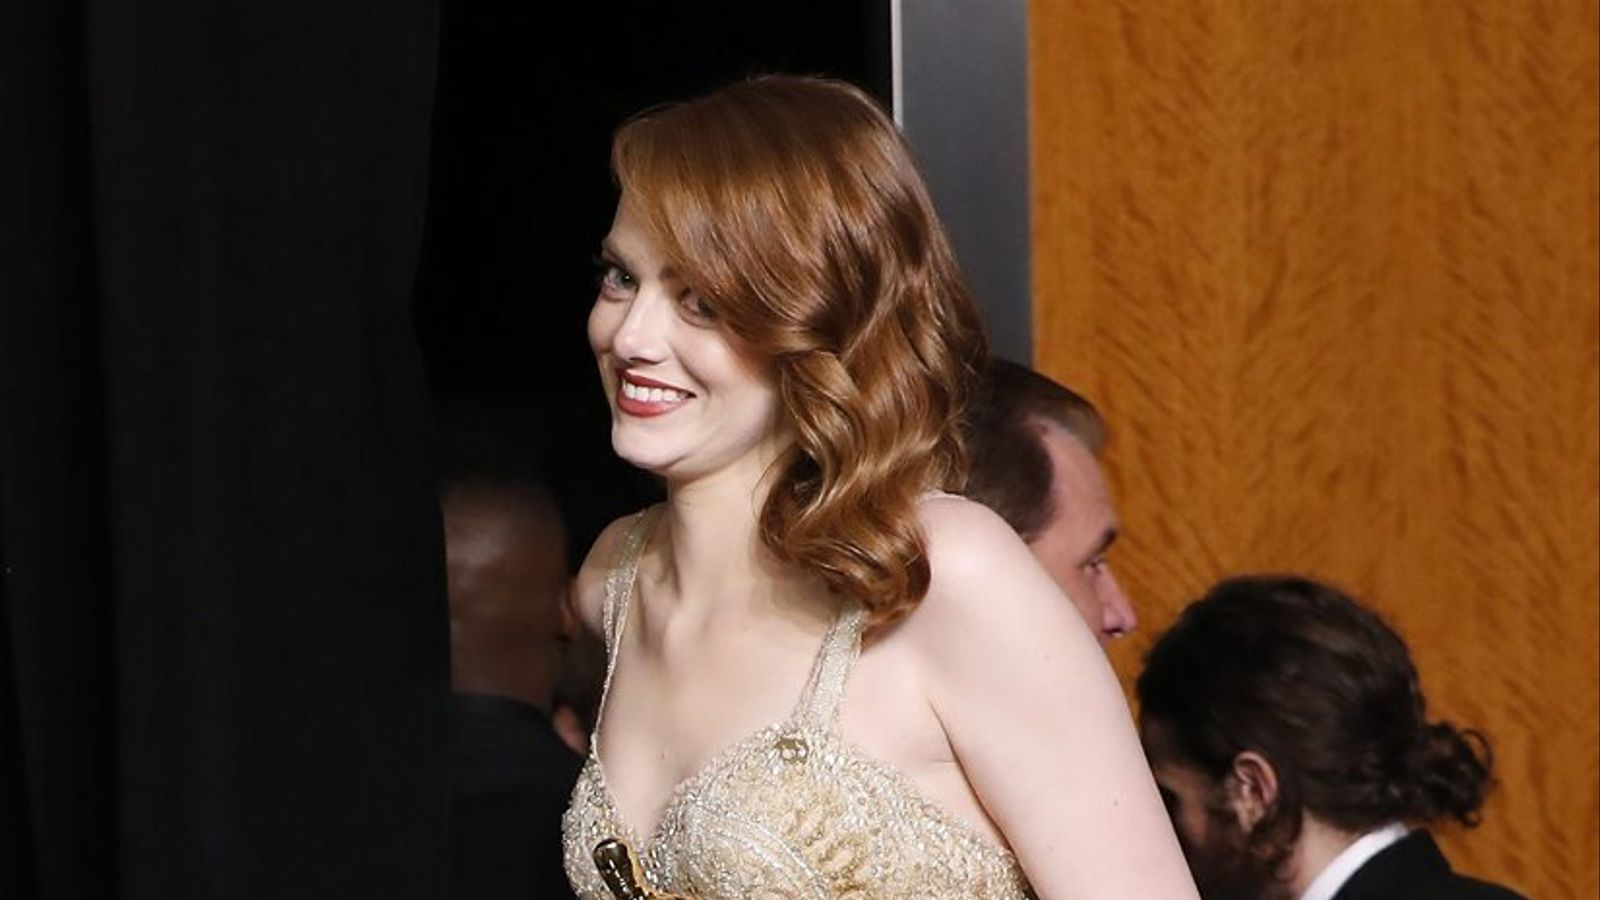 Emma Stone, la nova estrella total  De Hollywood